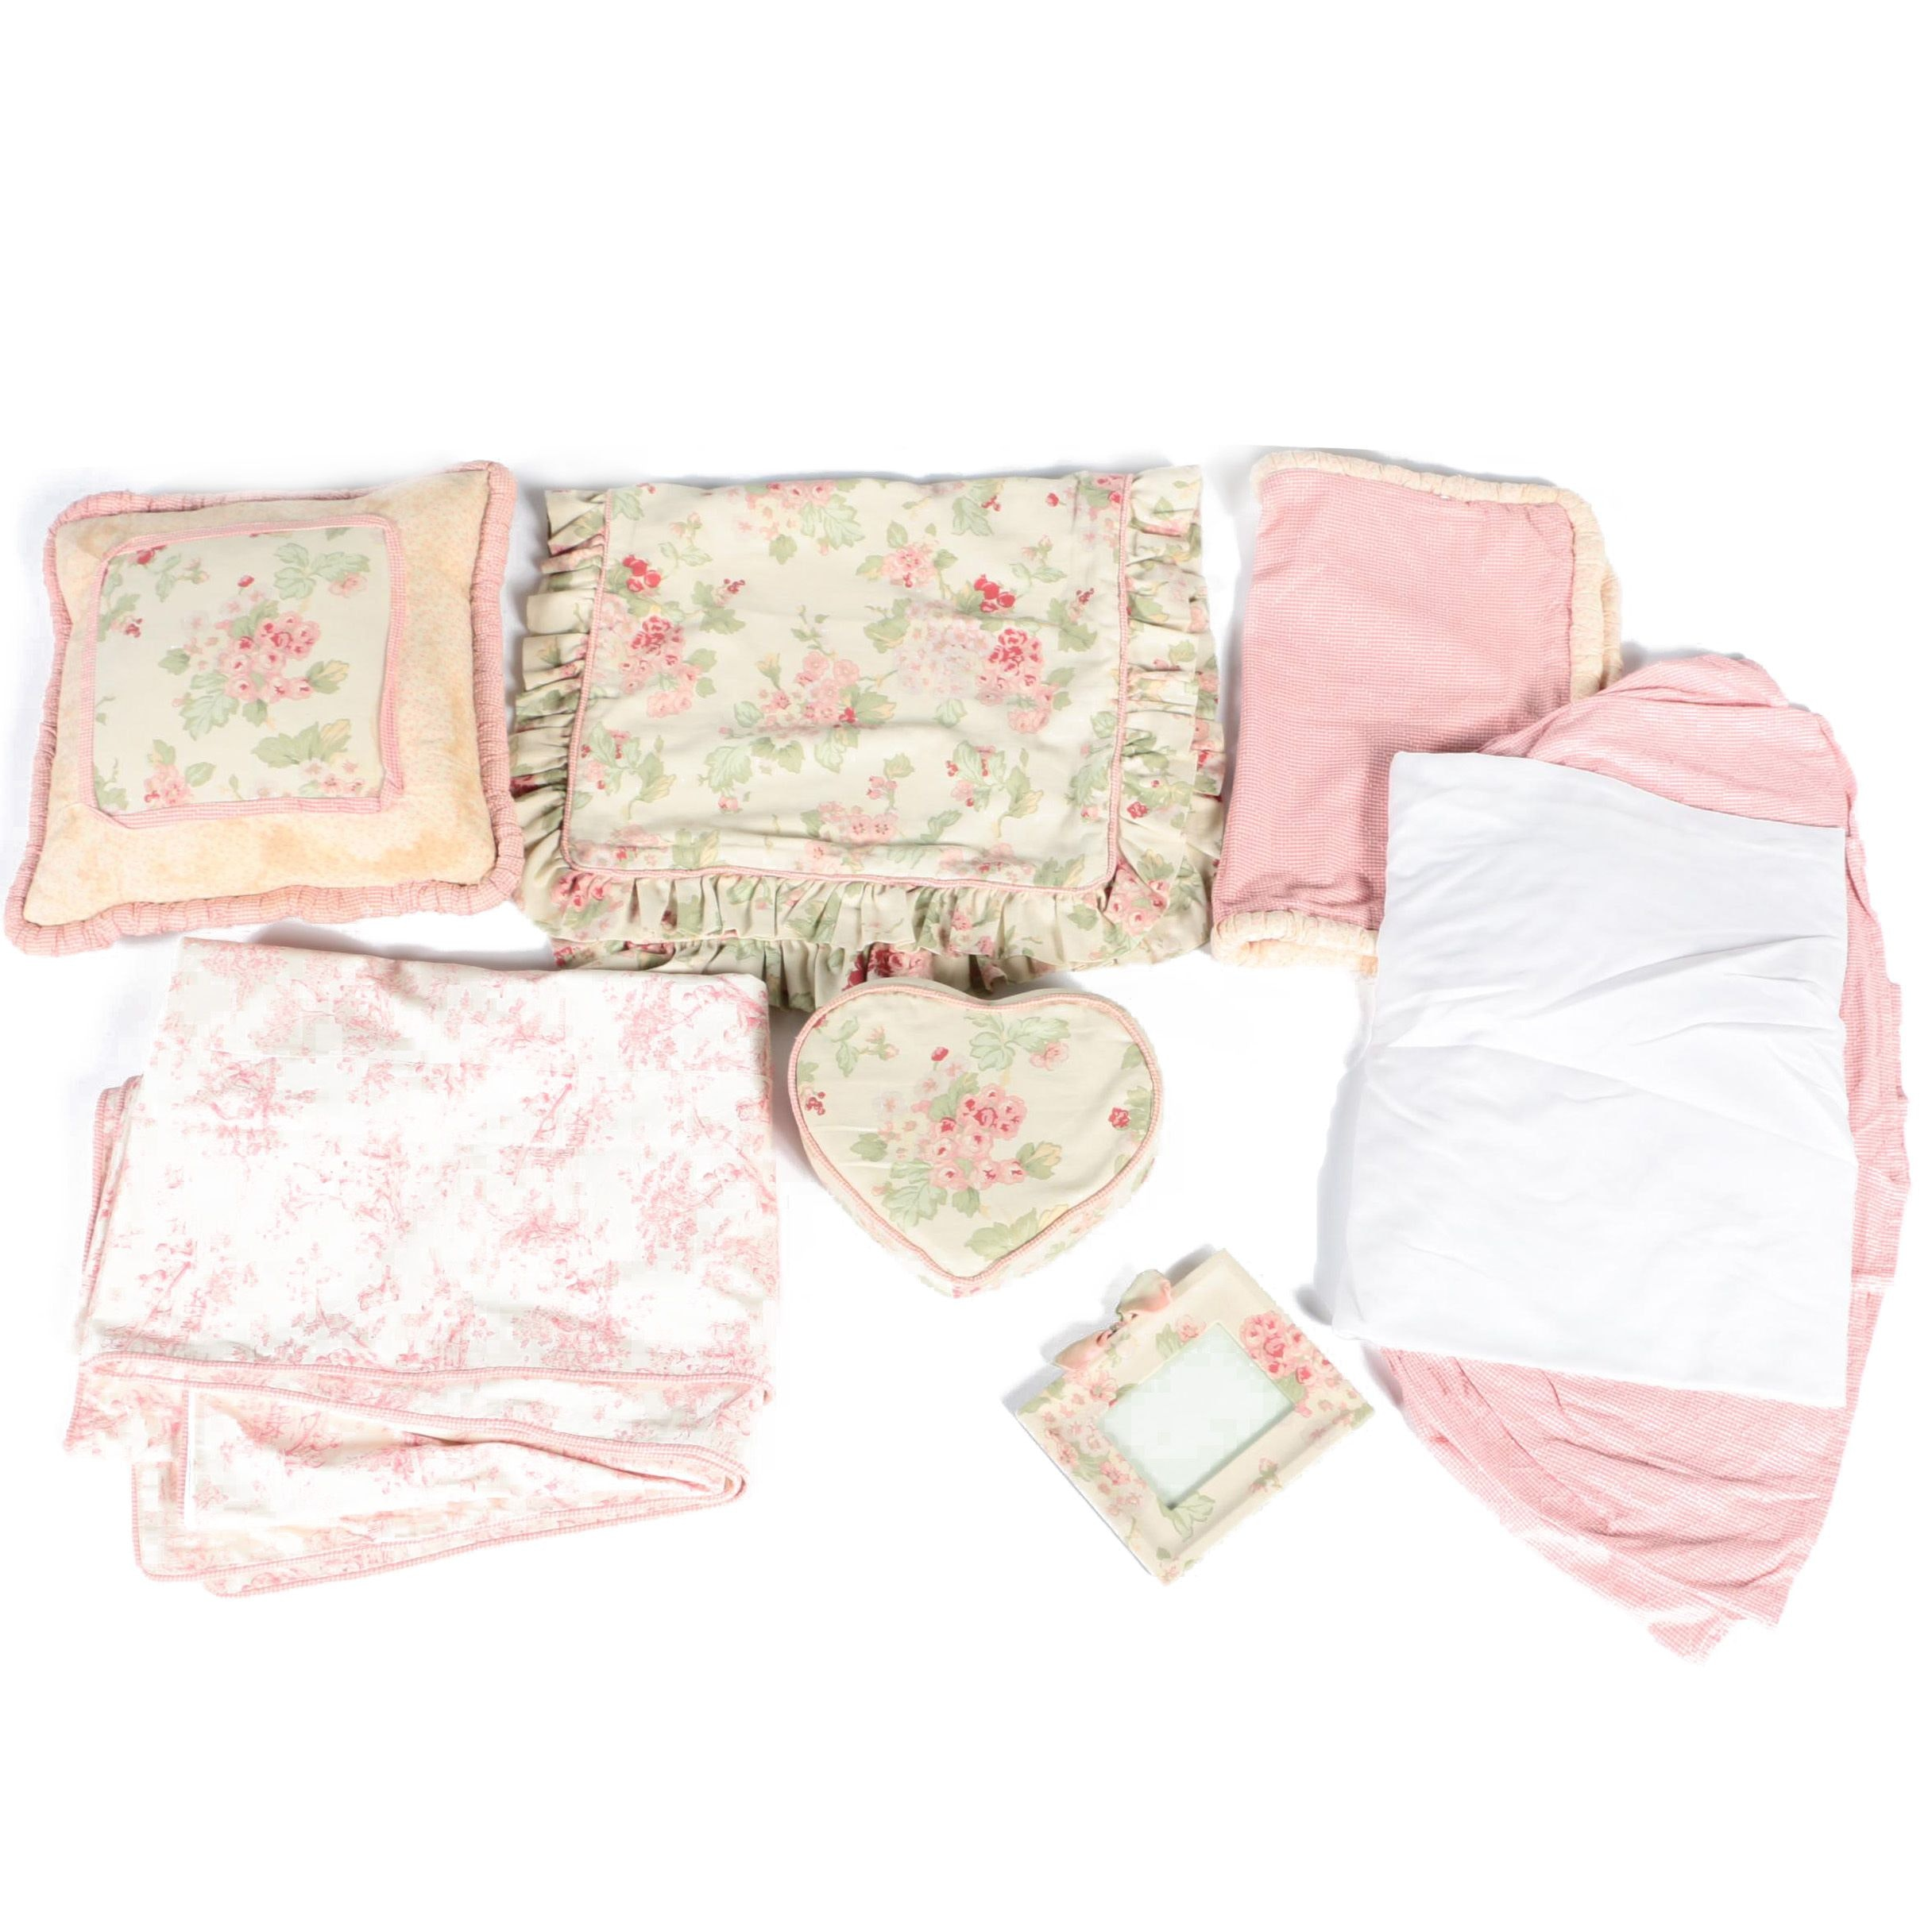 Duvet Cover with Coordinating Accessories